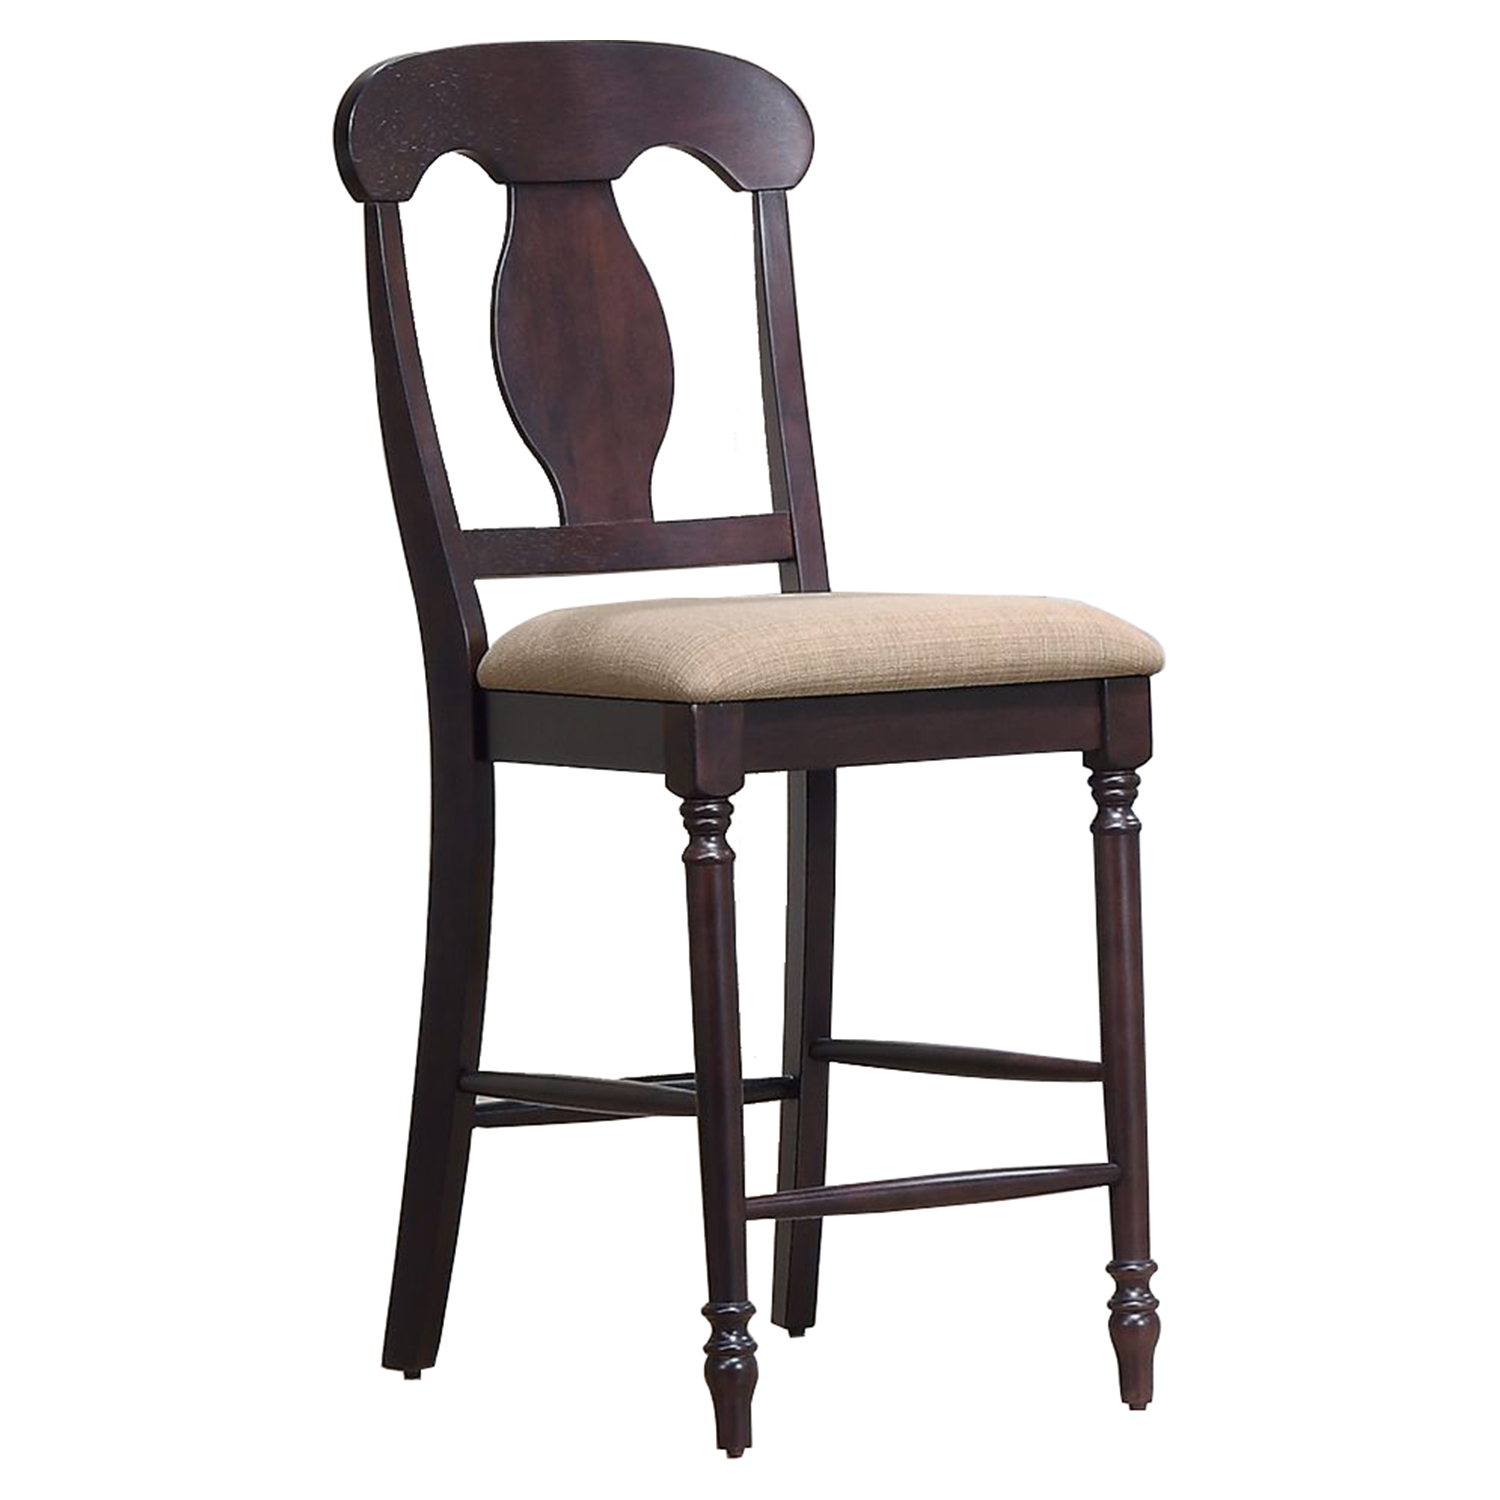 Napoleon Back 24quot Counter Stool Upholstered Seat Mocha  : stc53 u 97 ma from www.dcgstores.com size 1000 x 1000 jpeg 167kB